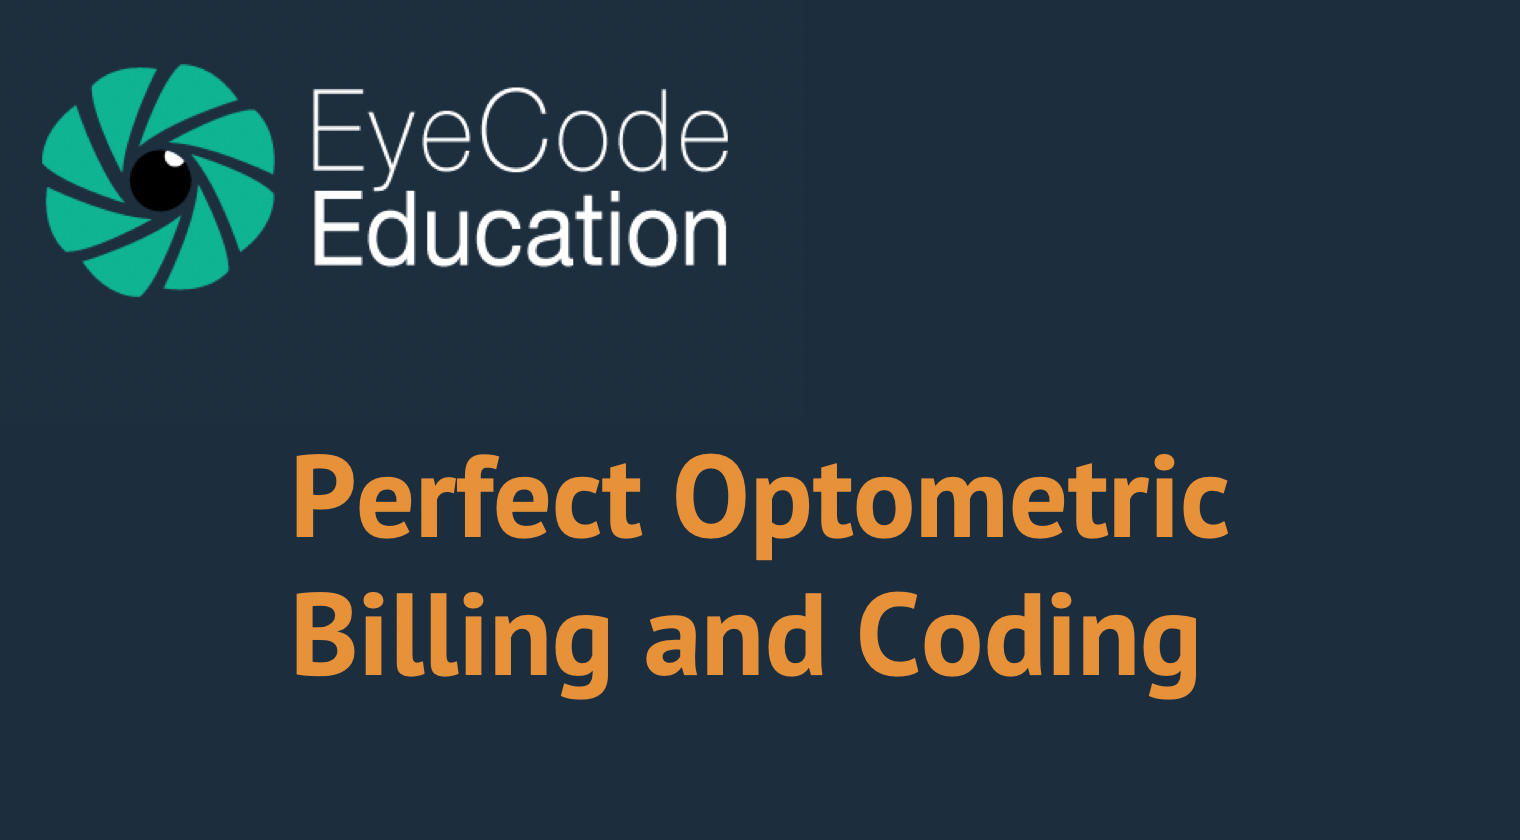 EyeCode: Billing and Coding